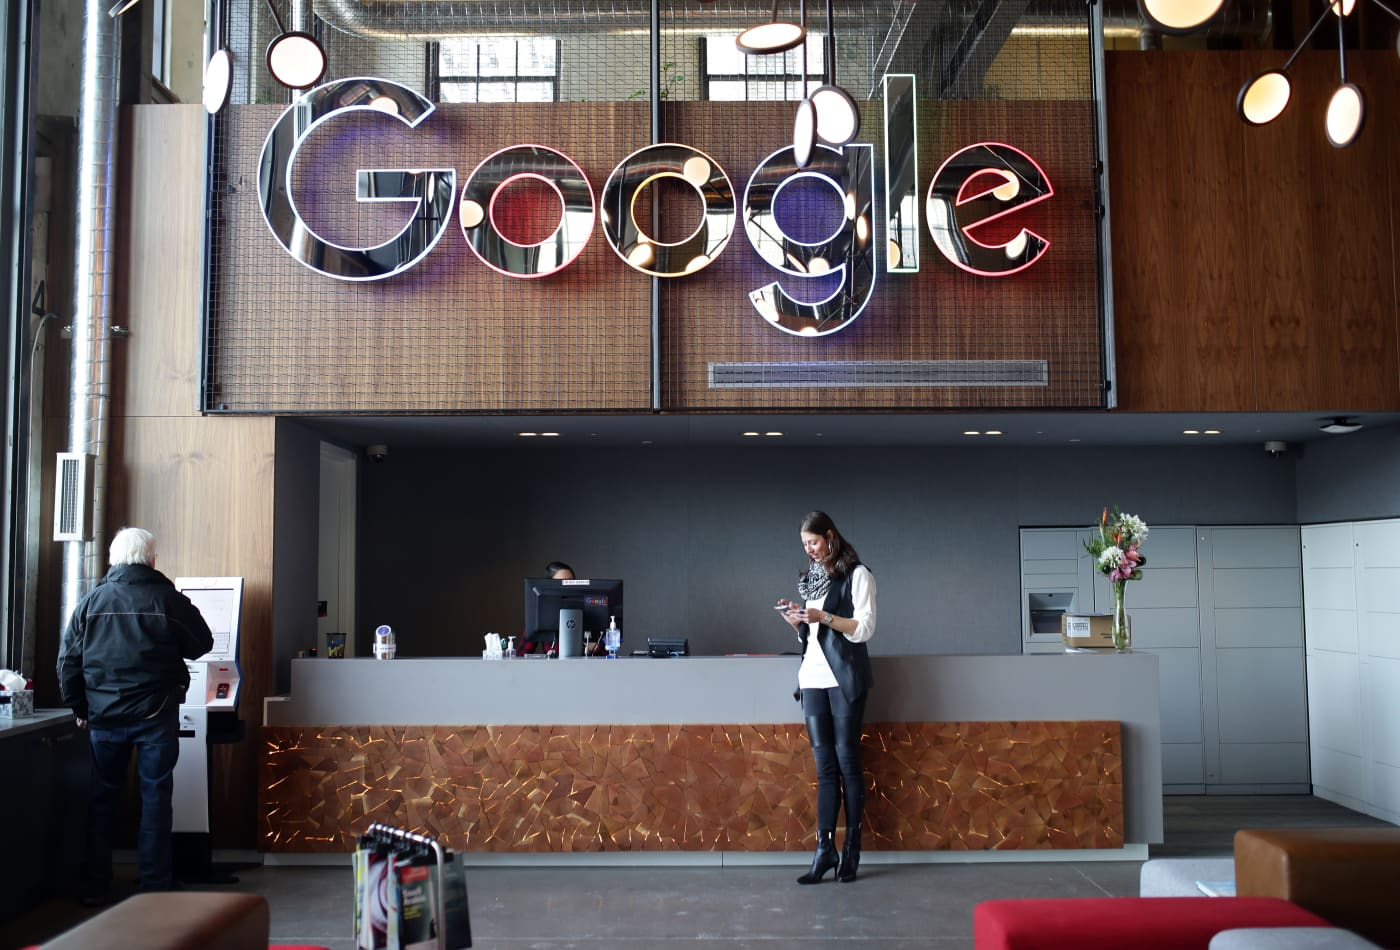 Glassdoor The 10 Highest Paying Jobs At Google All Pay Over 200 000